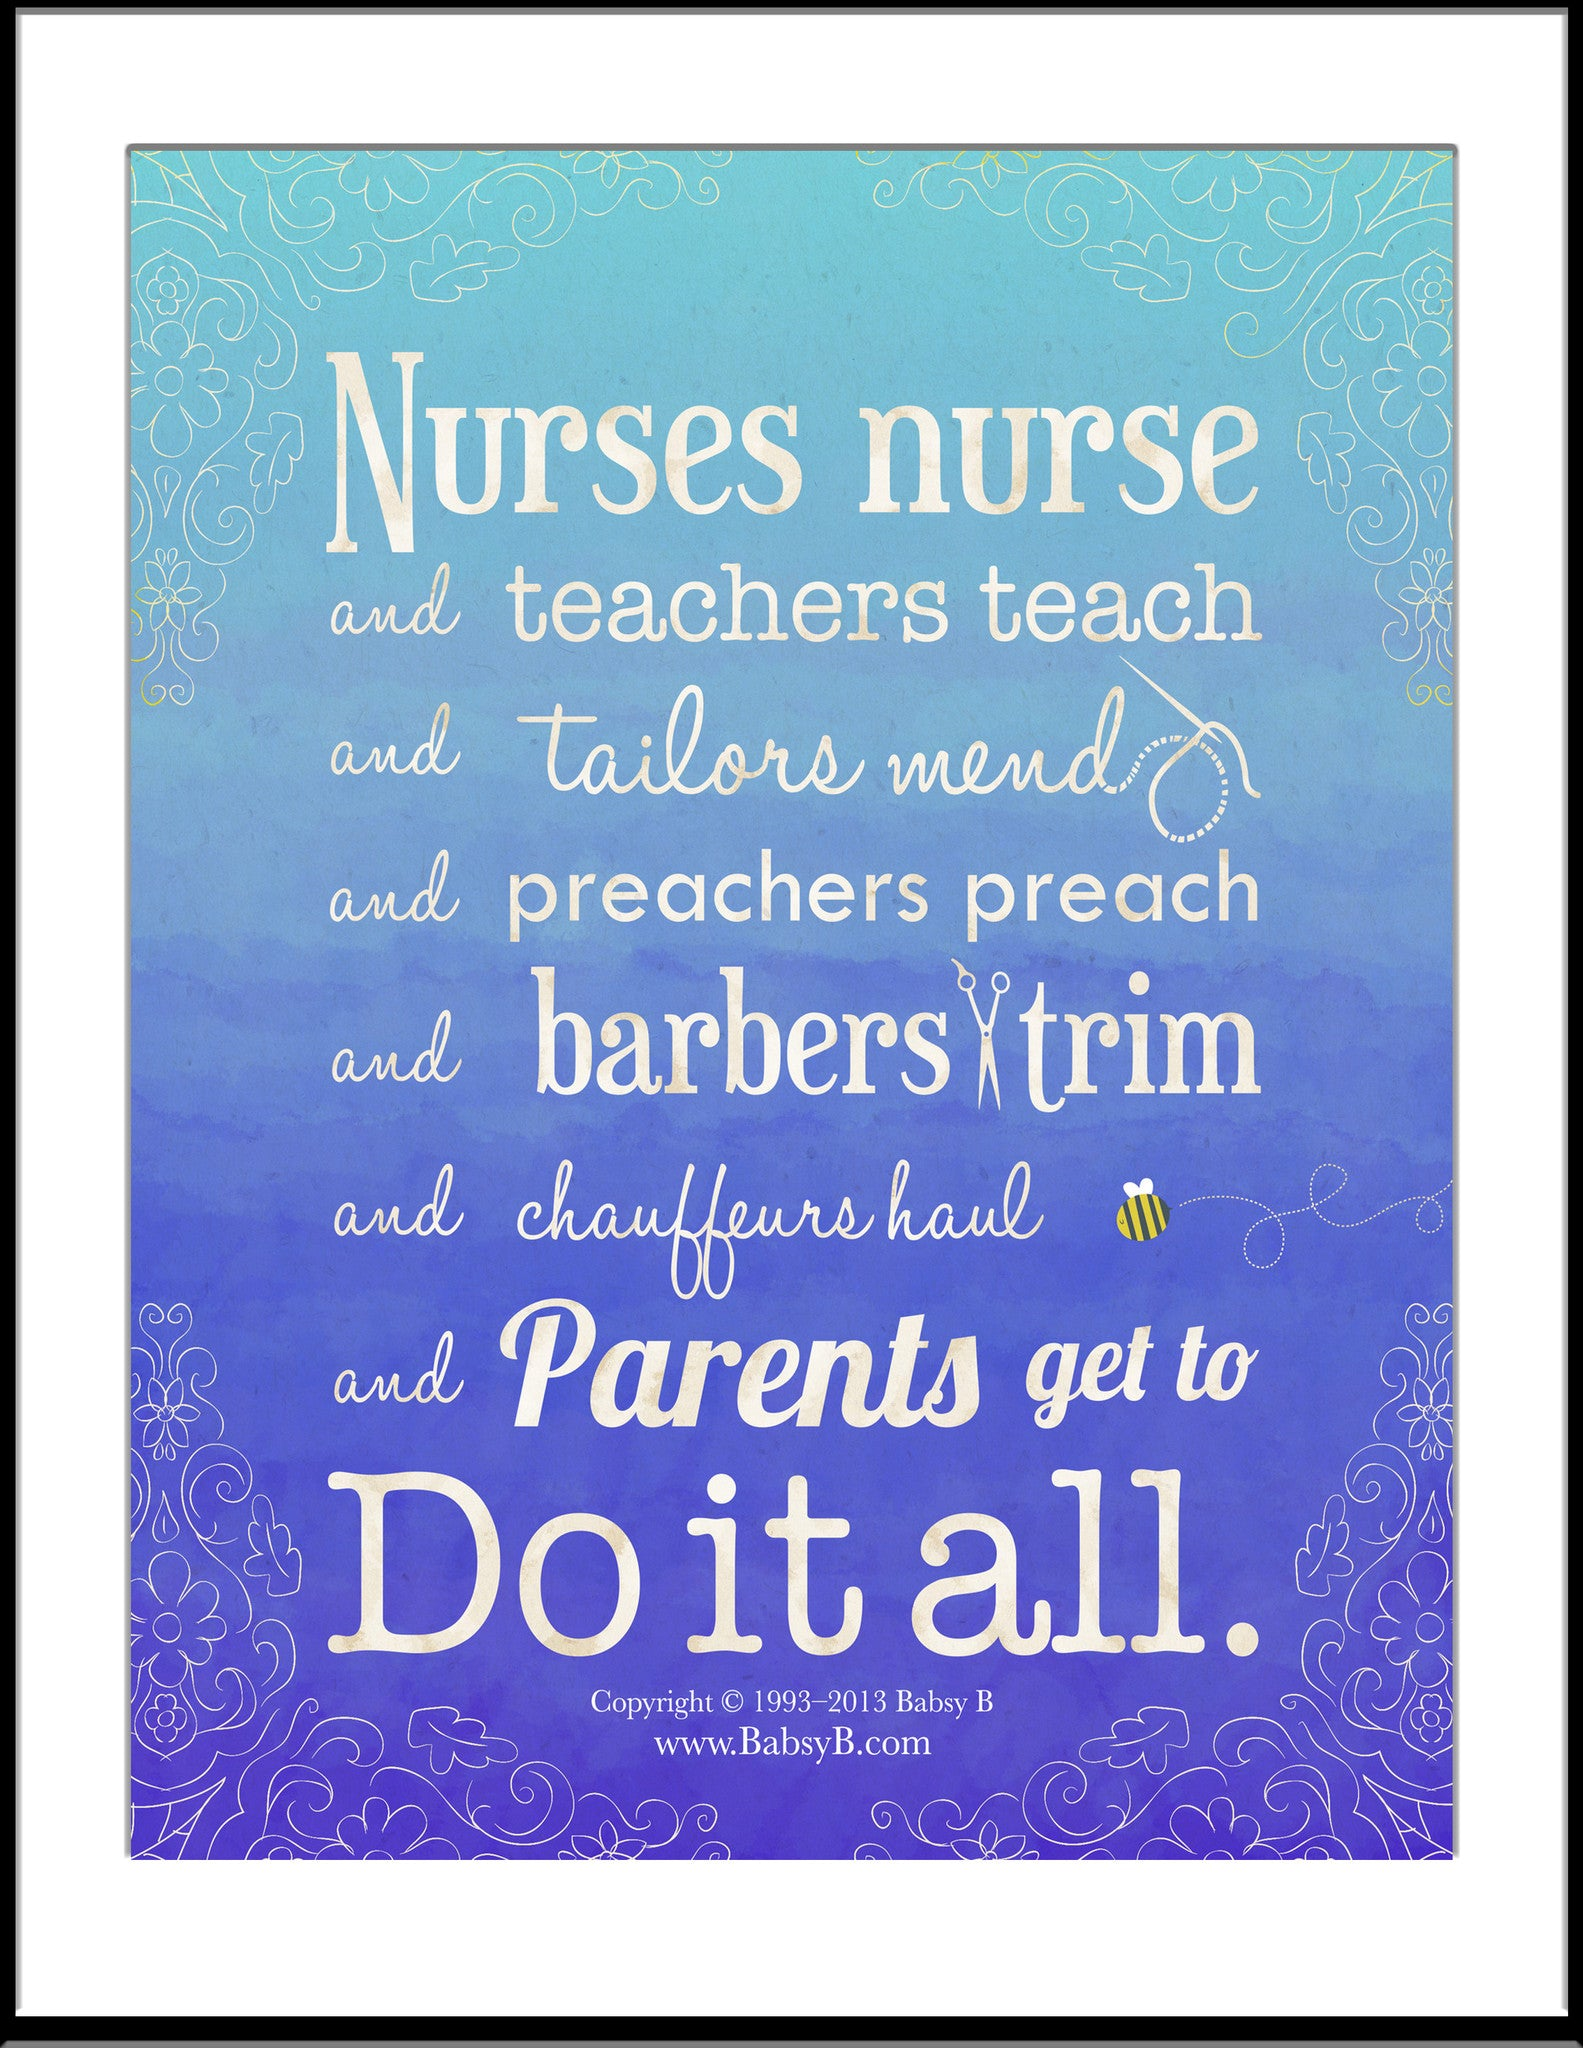 parents do it all poster babsy b